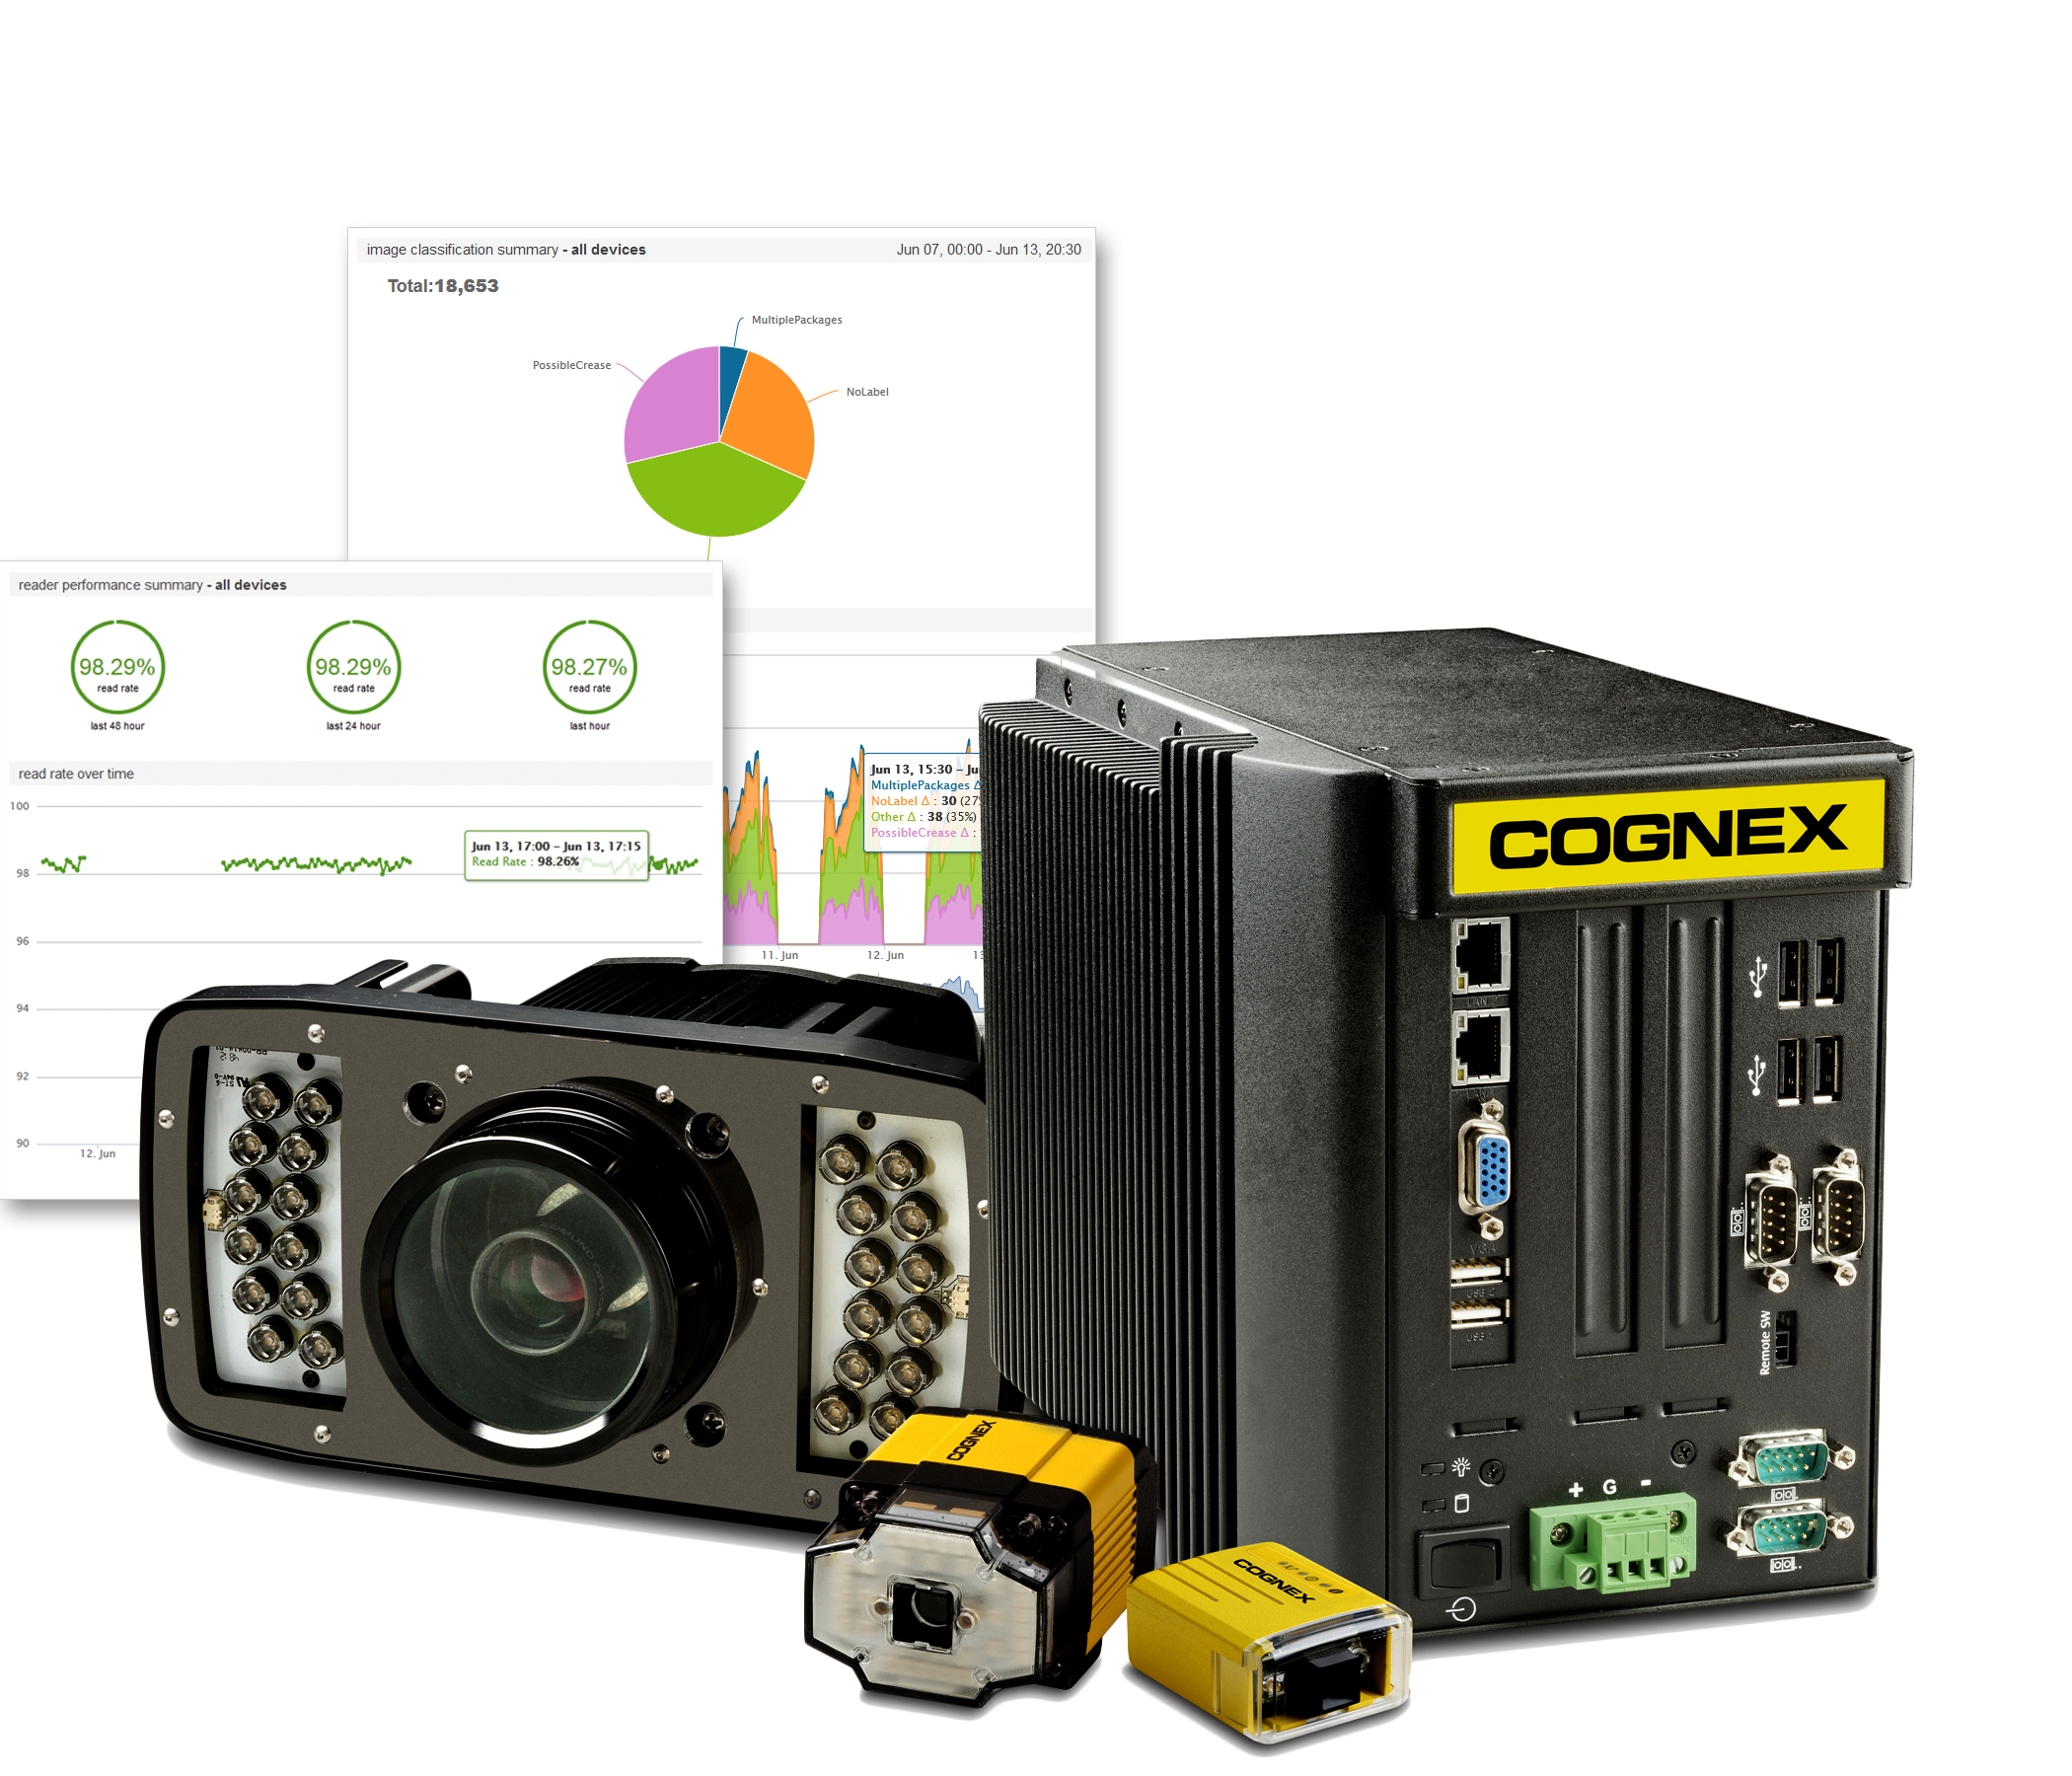 Cognex Explorer Real Time Monitoring (RTM) performance system